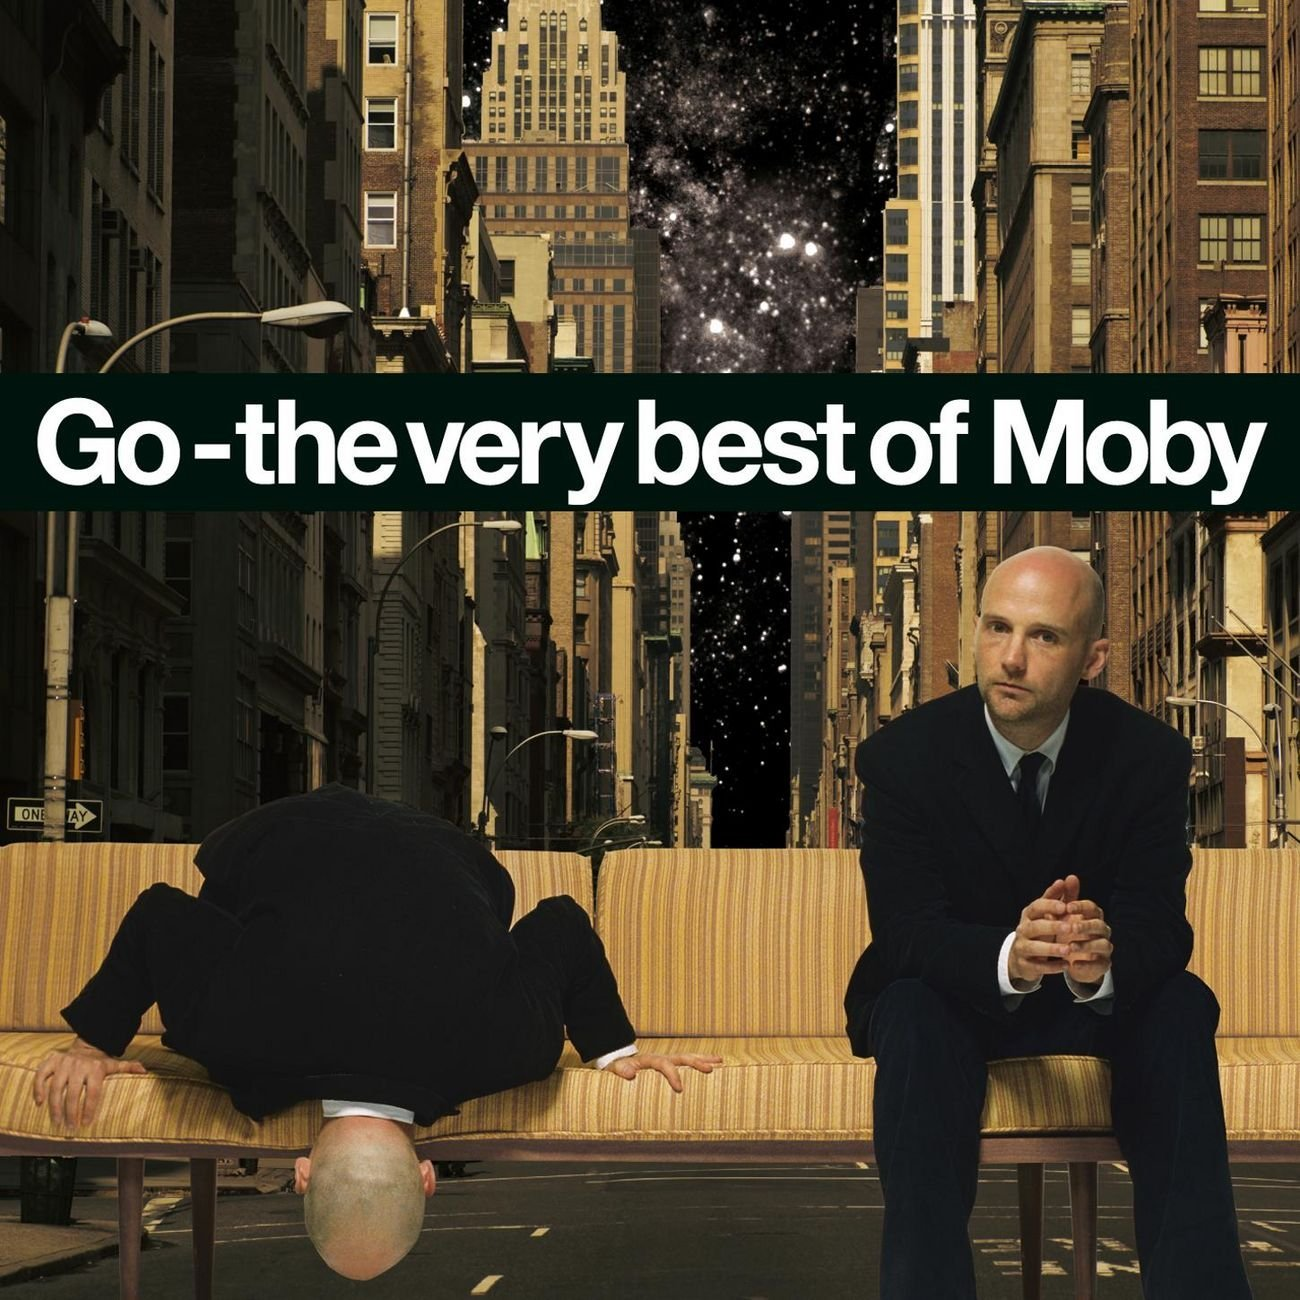 """M03 Moby Go: The Very Best of Moby Disc 1"" Moby"